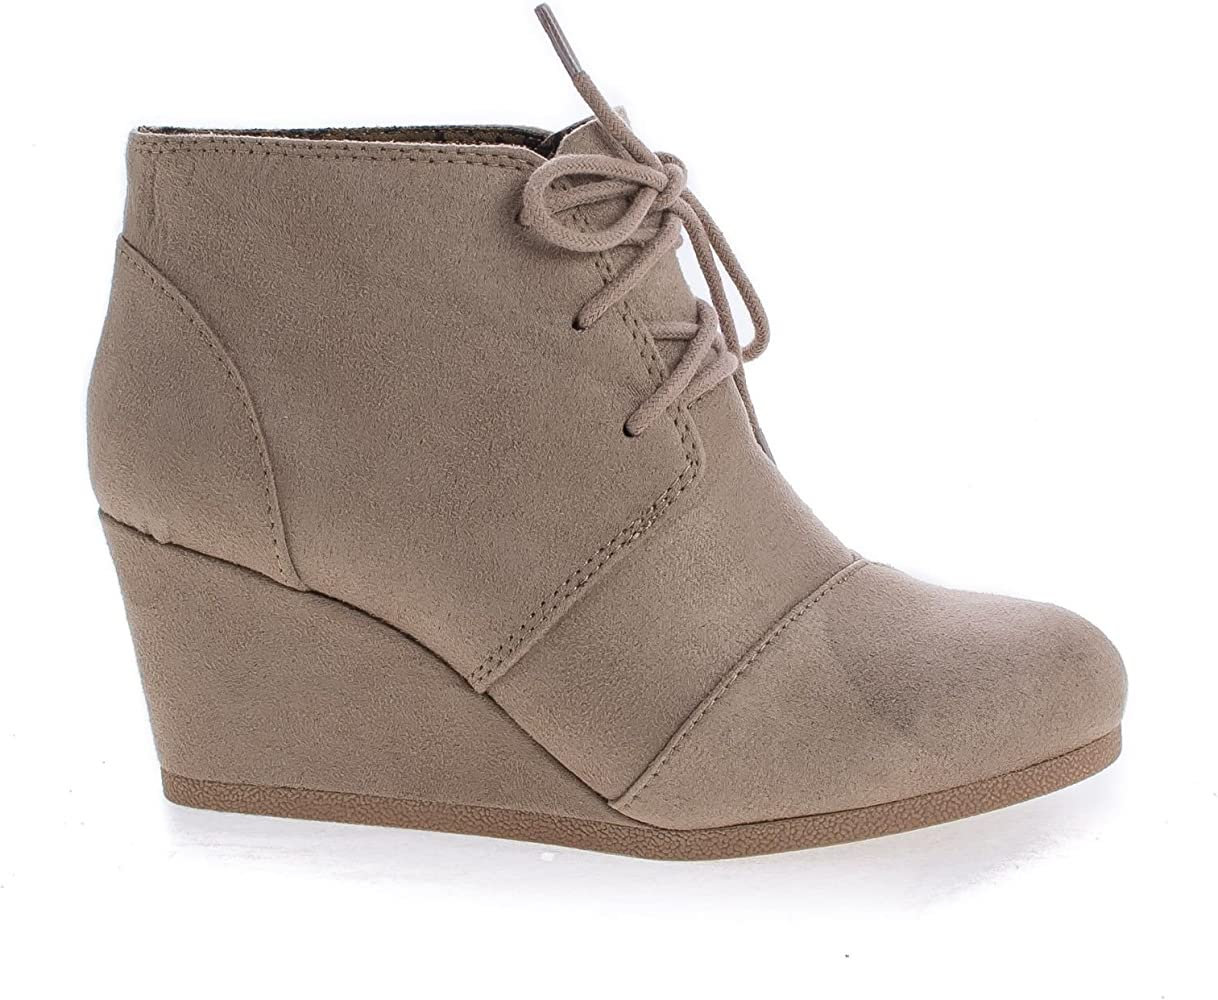 ec67a3eb22ab6 Lace Up Oxford Ankle Bootie Round Toe High Hidden Wedge Heel Women's Shoe  Light Taupe